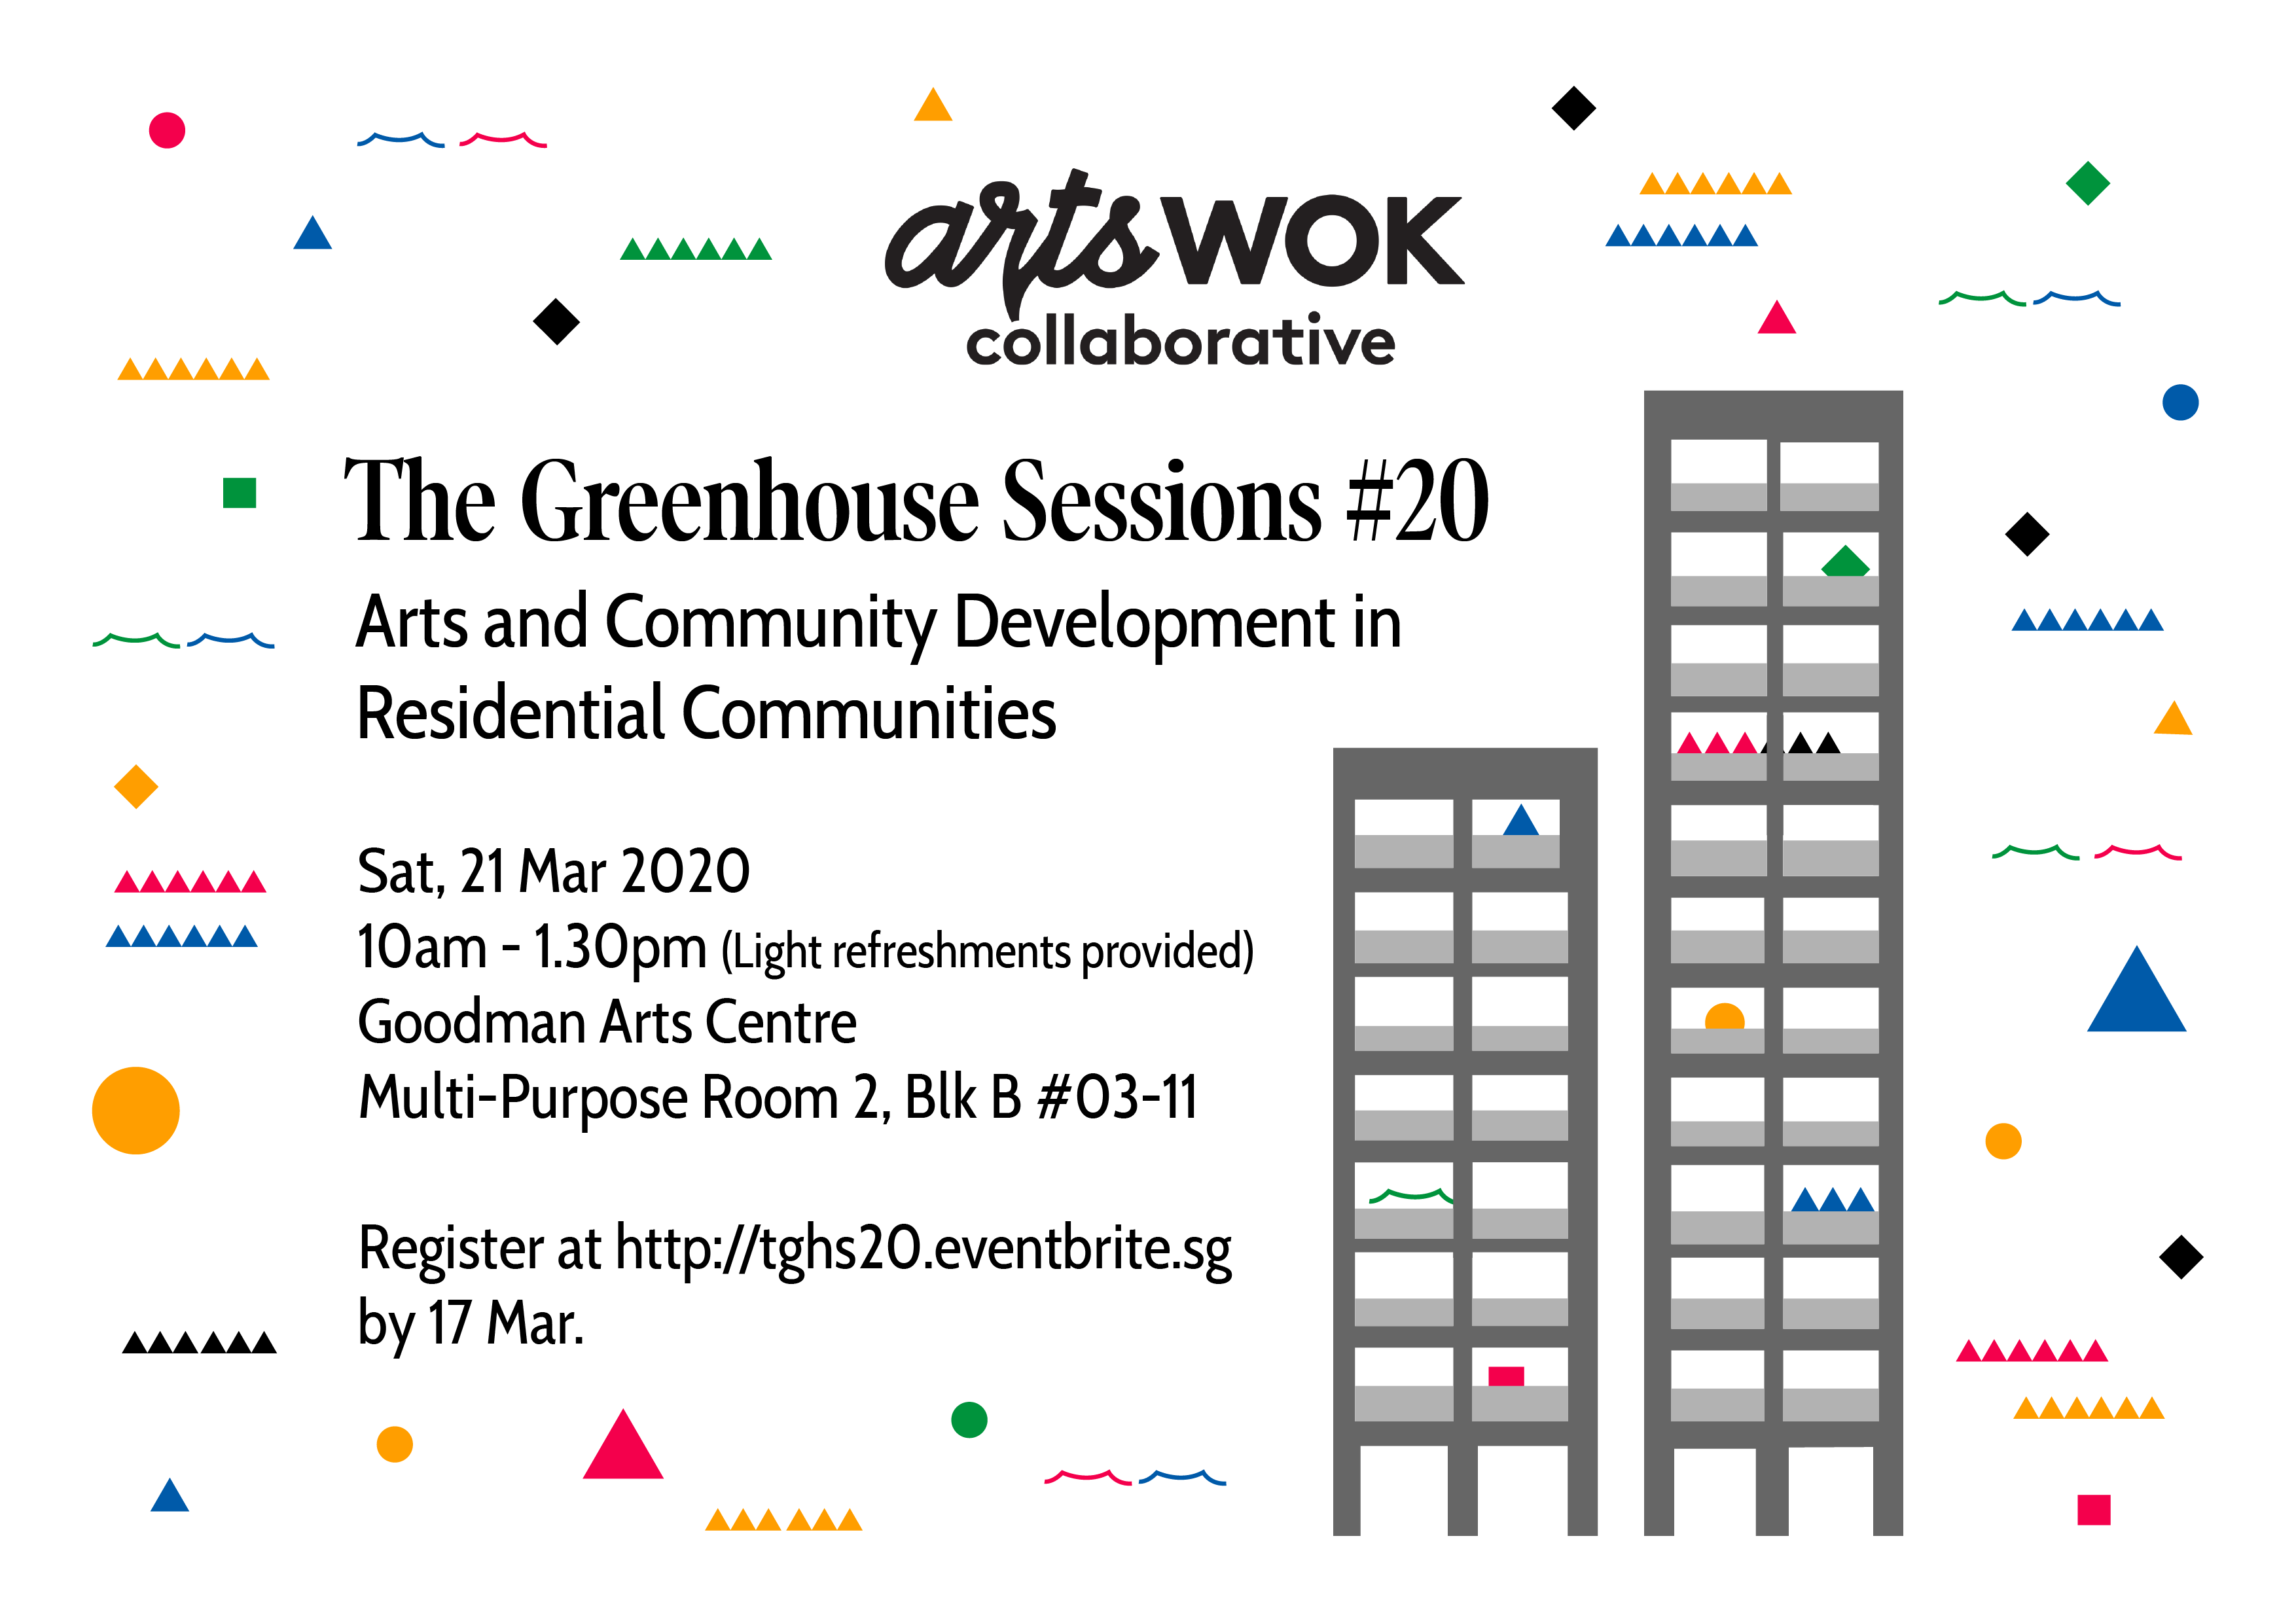 The Greenhouse Sessions #20: Arts and Community Development in Residential Communities is happening on Saturday, 21 March 2020 at Goodman Arts Centre Multi-Purpose Room 2, Blk B #03-11 from 10am to 1.30pm. Register at http://tghs20.eventbrite.sg by 17 March.